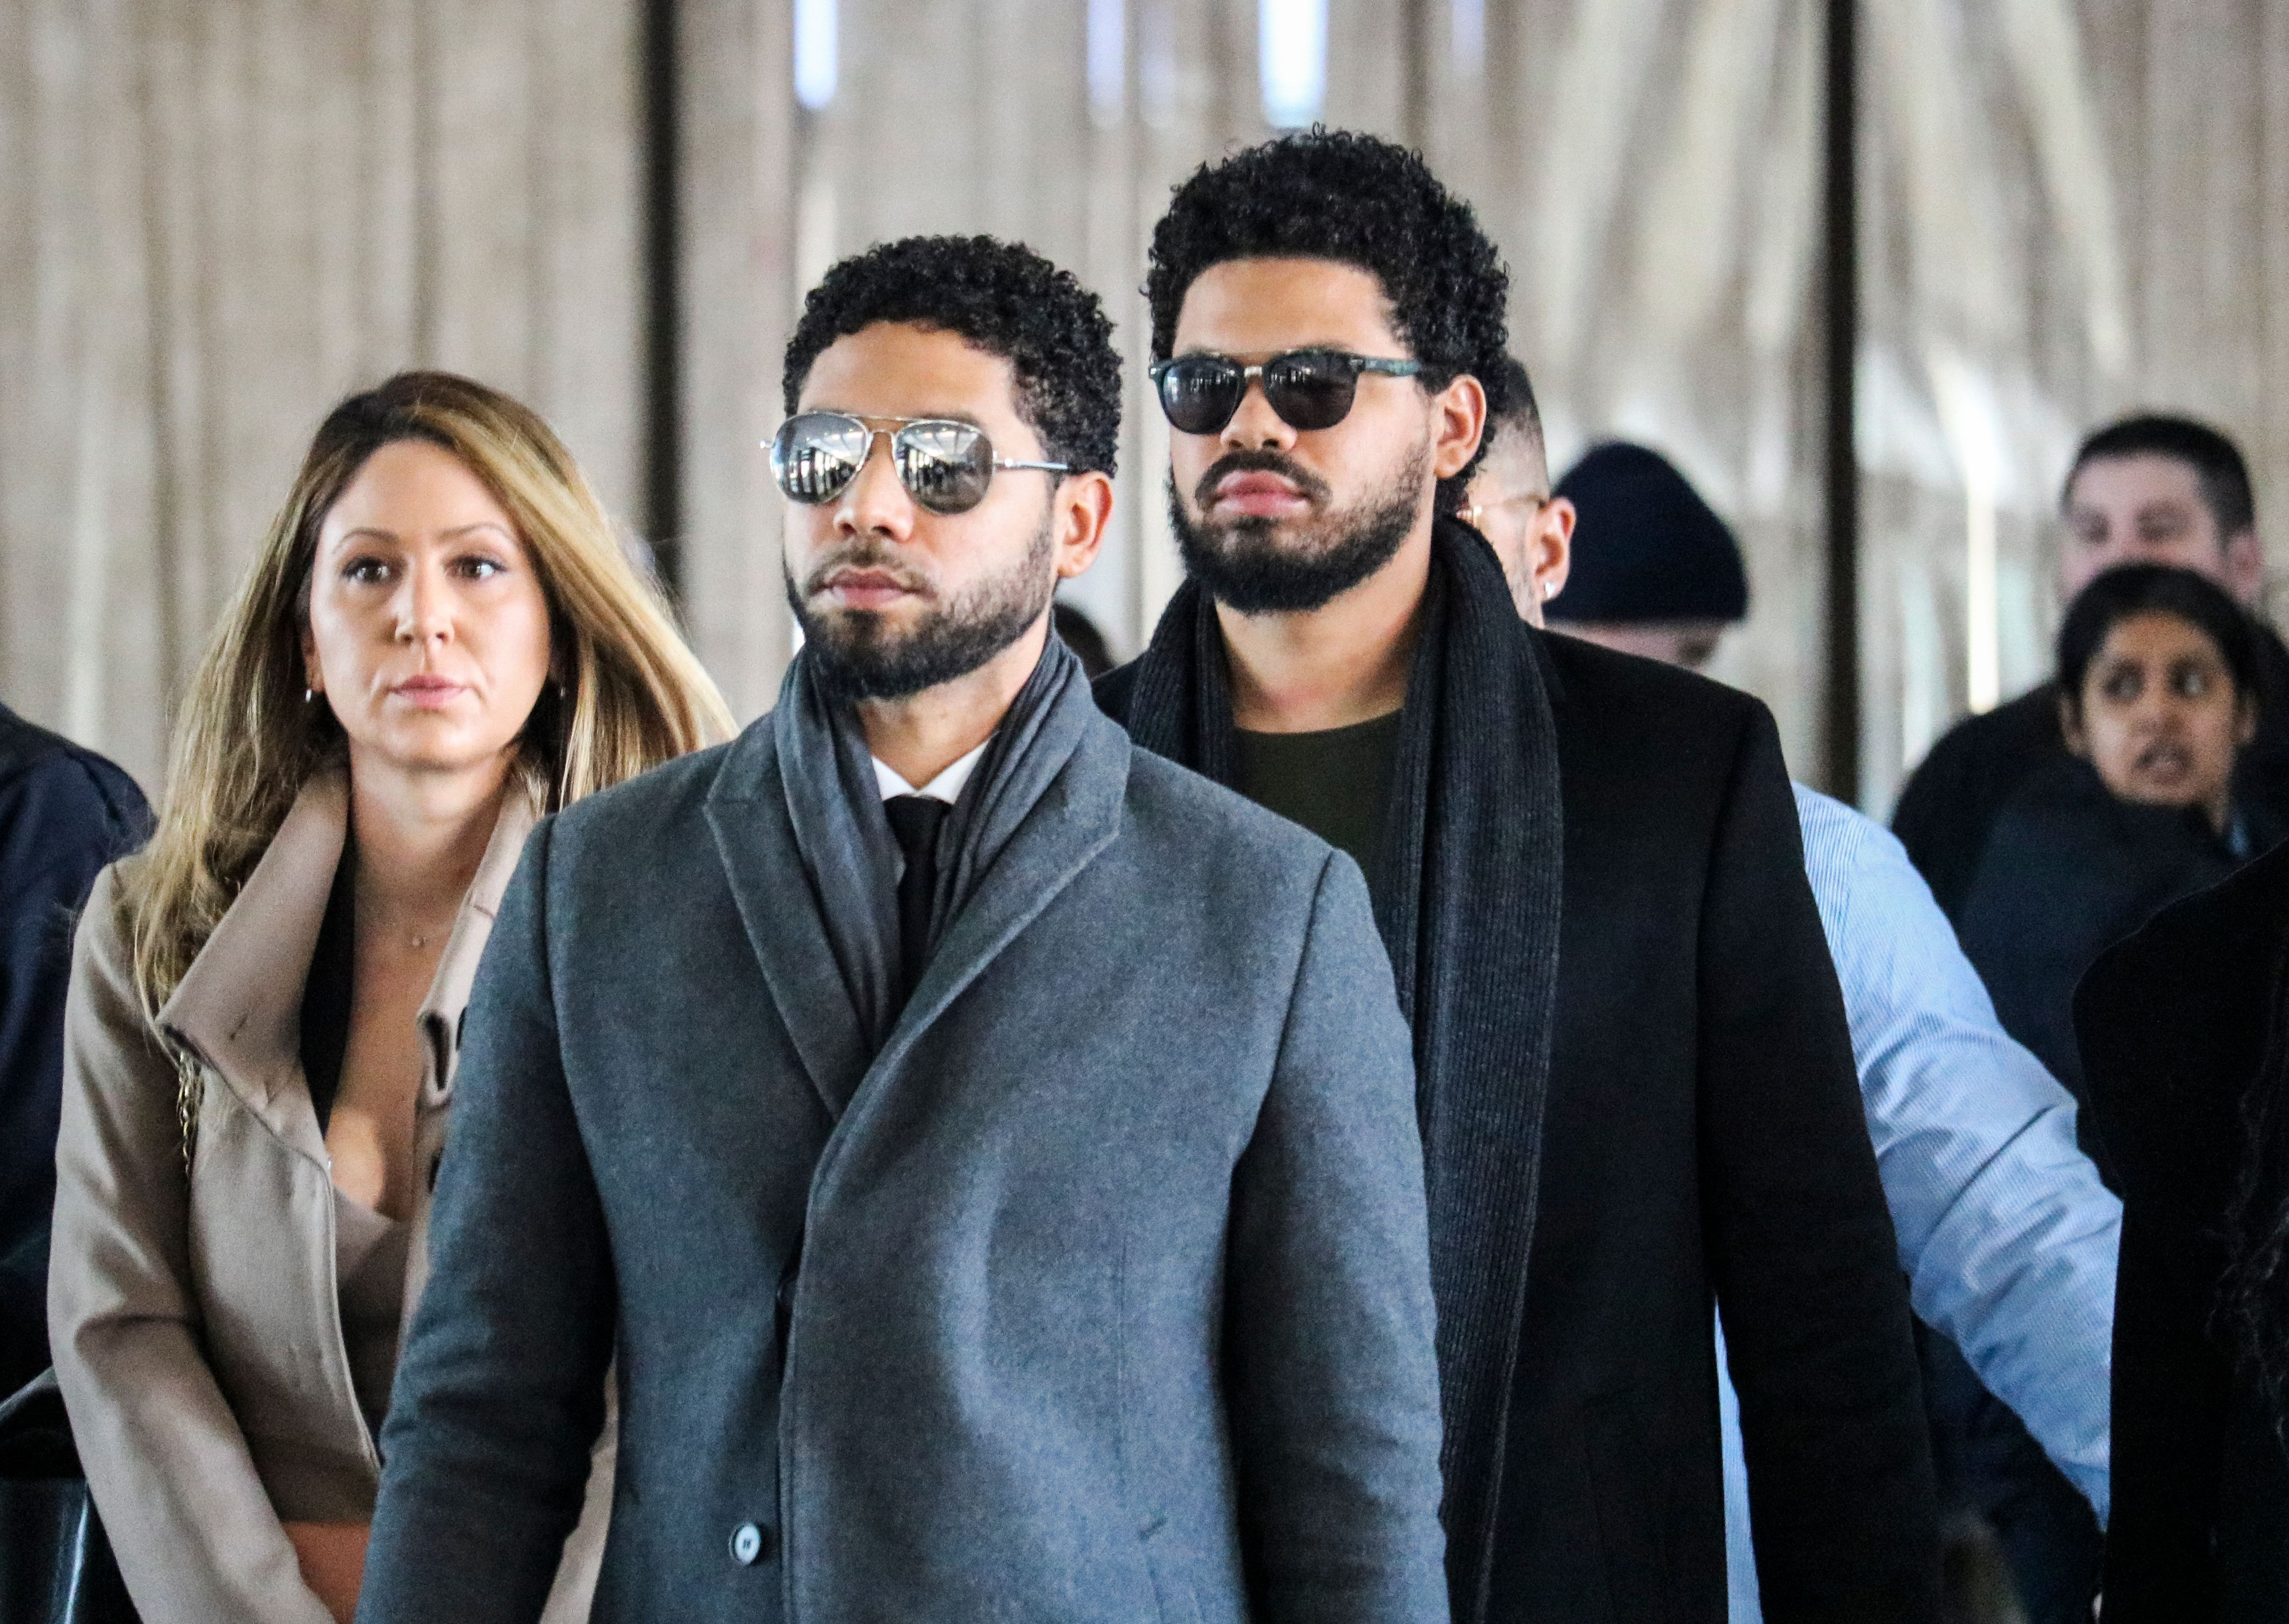 Jussie Smollett pleads not guilty to lying about attack 16 hrs